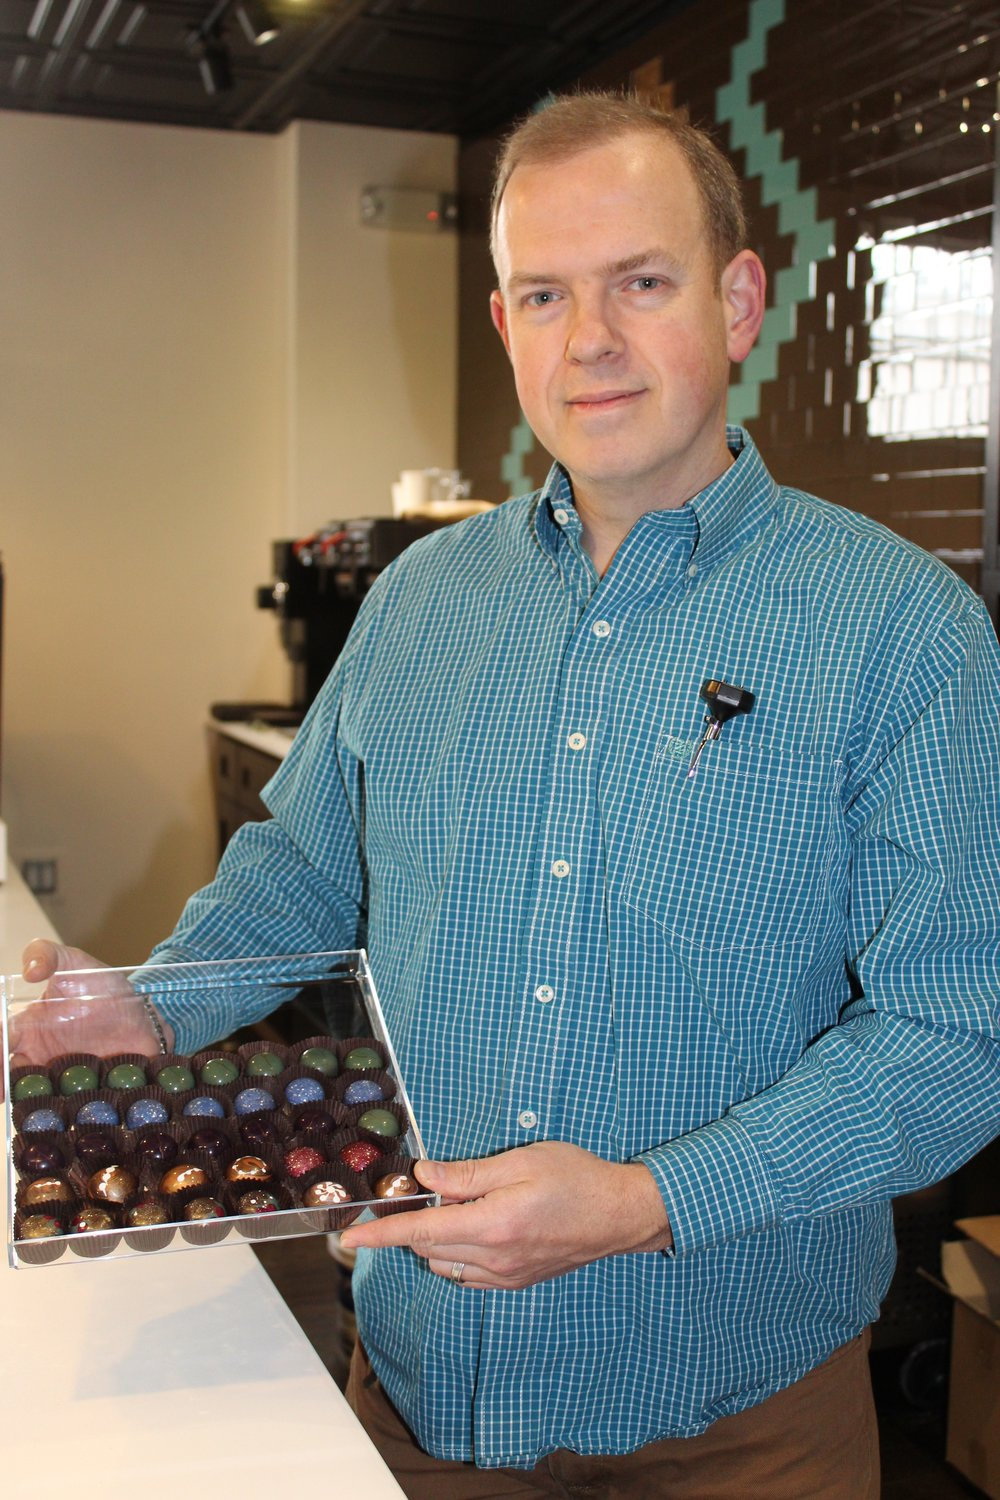 Kenniff's favorite product is Wilson's hand-painted truffles.